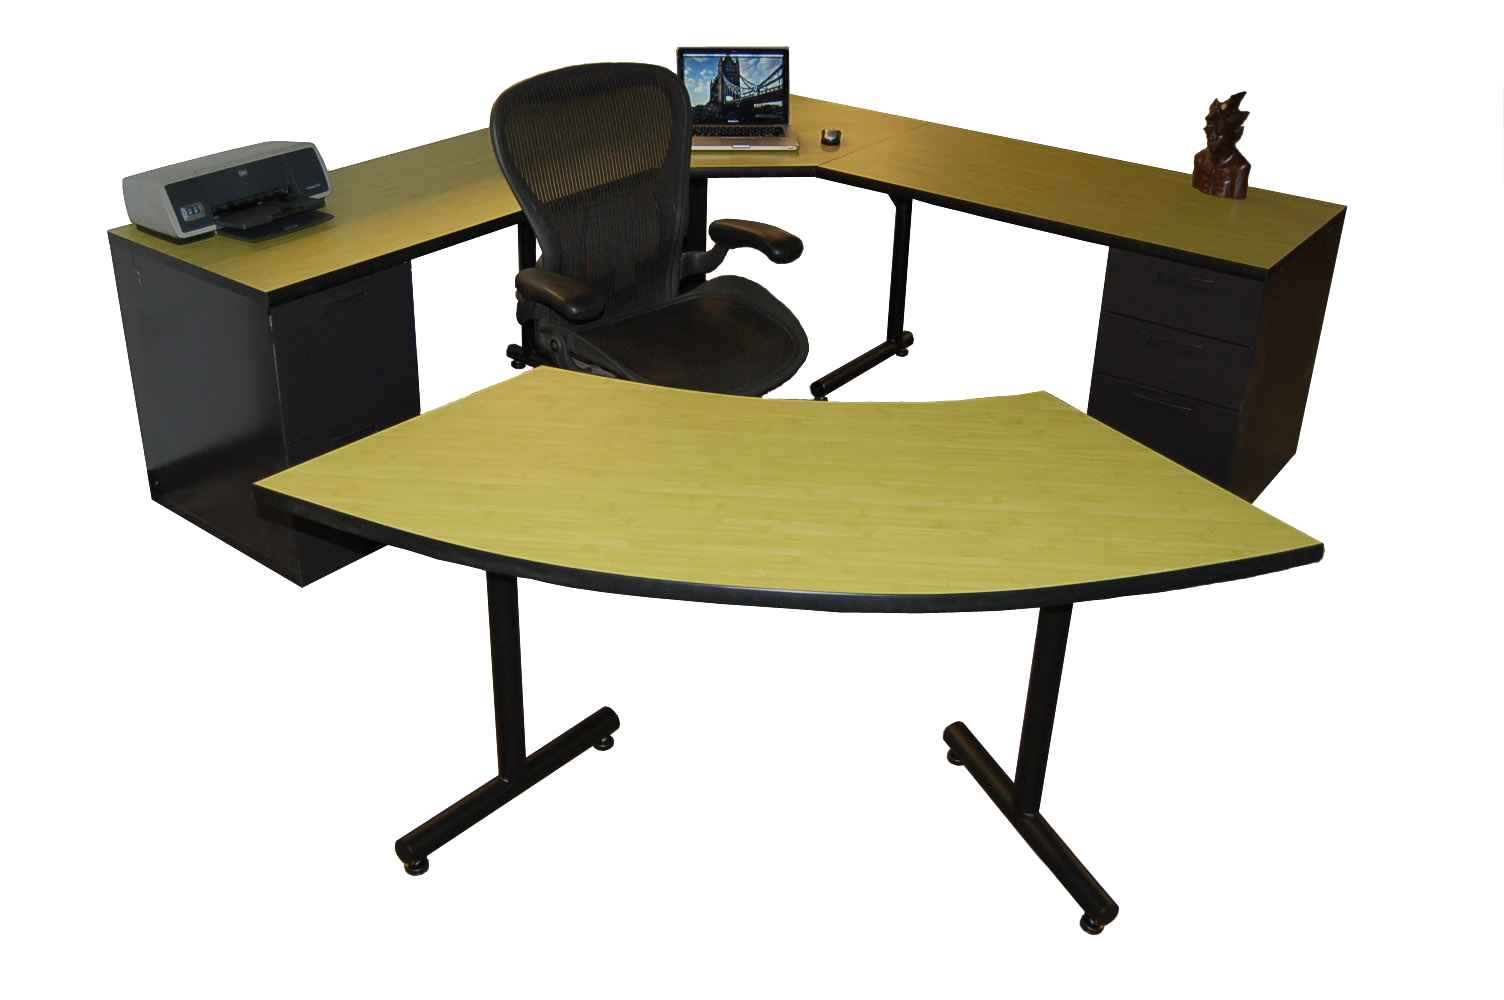 Bargain office furniture market ideas - Custom office desk ...